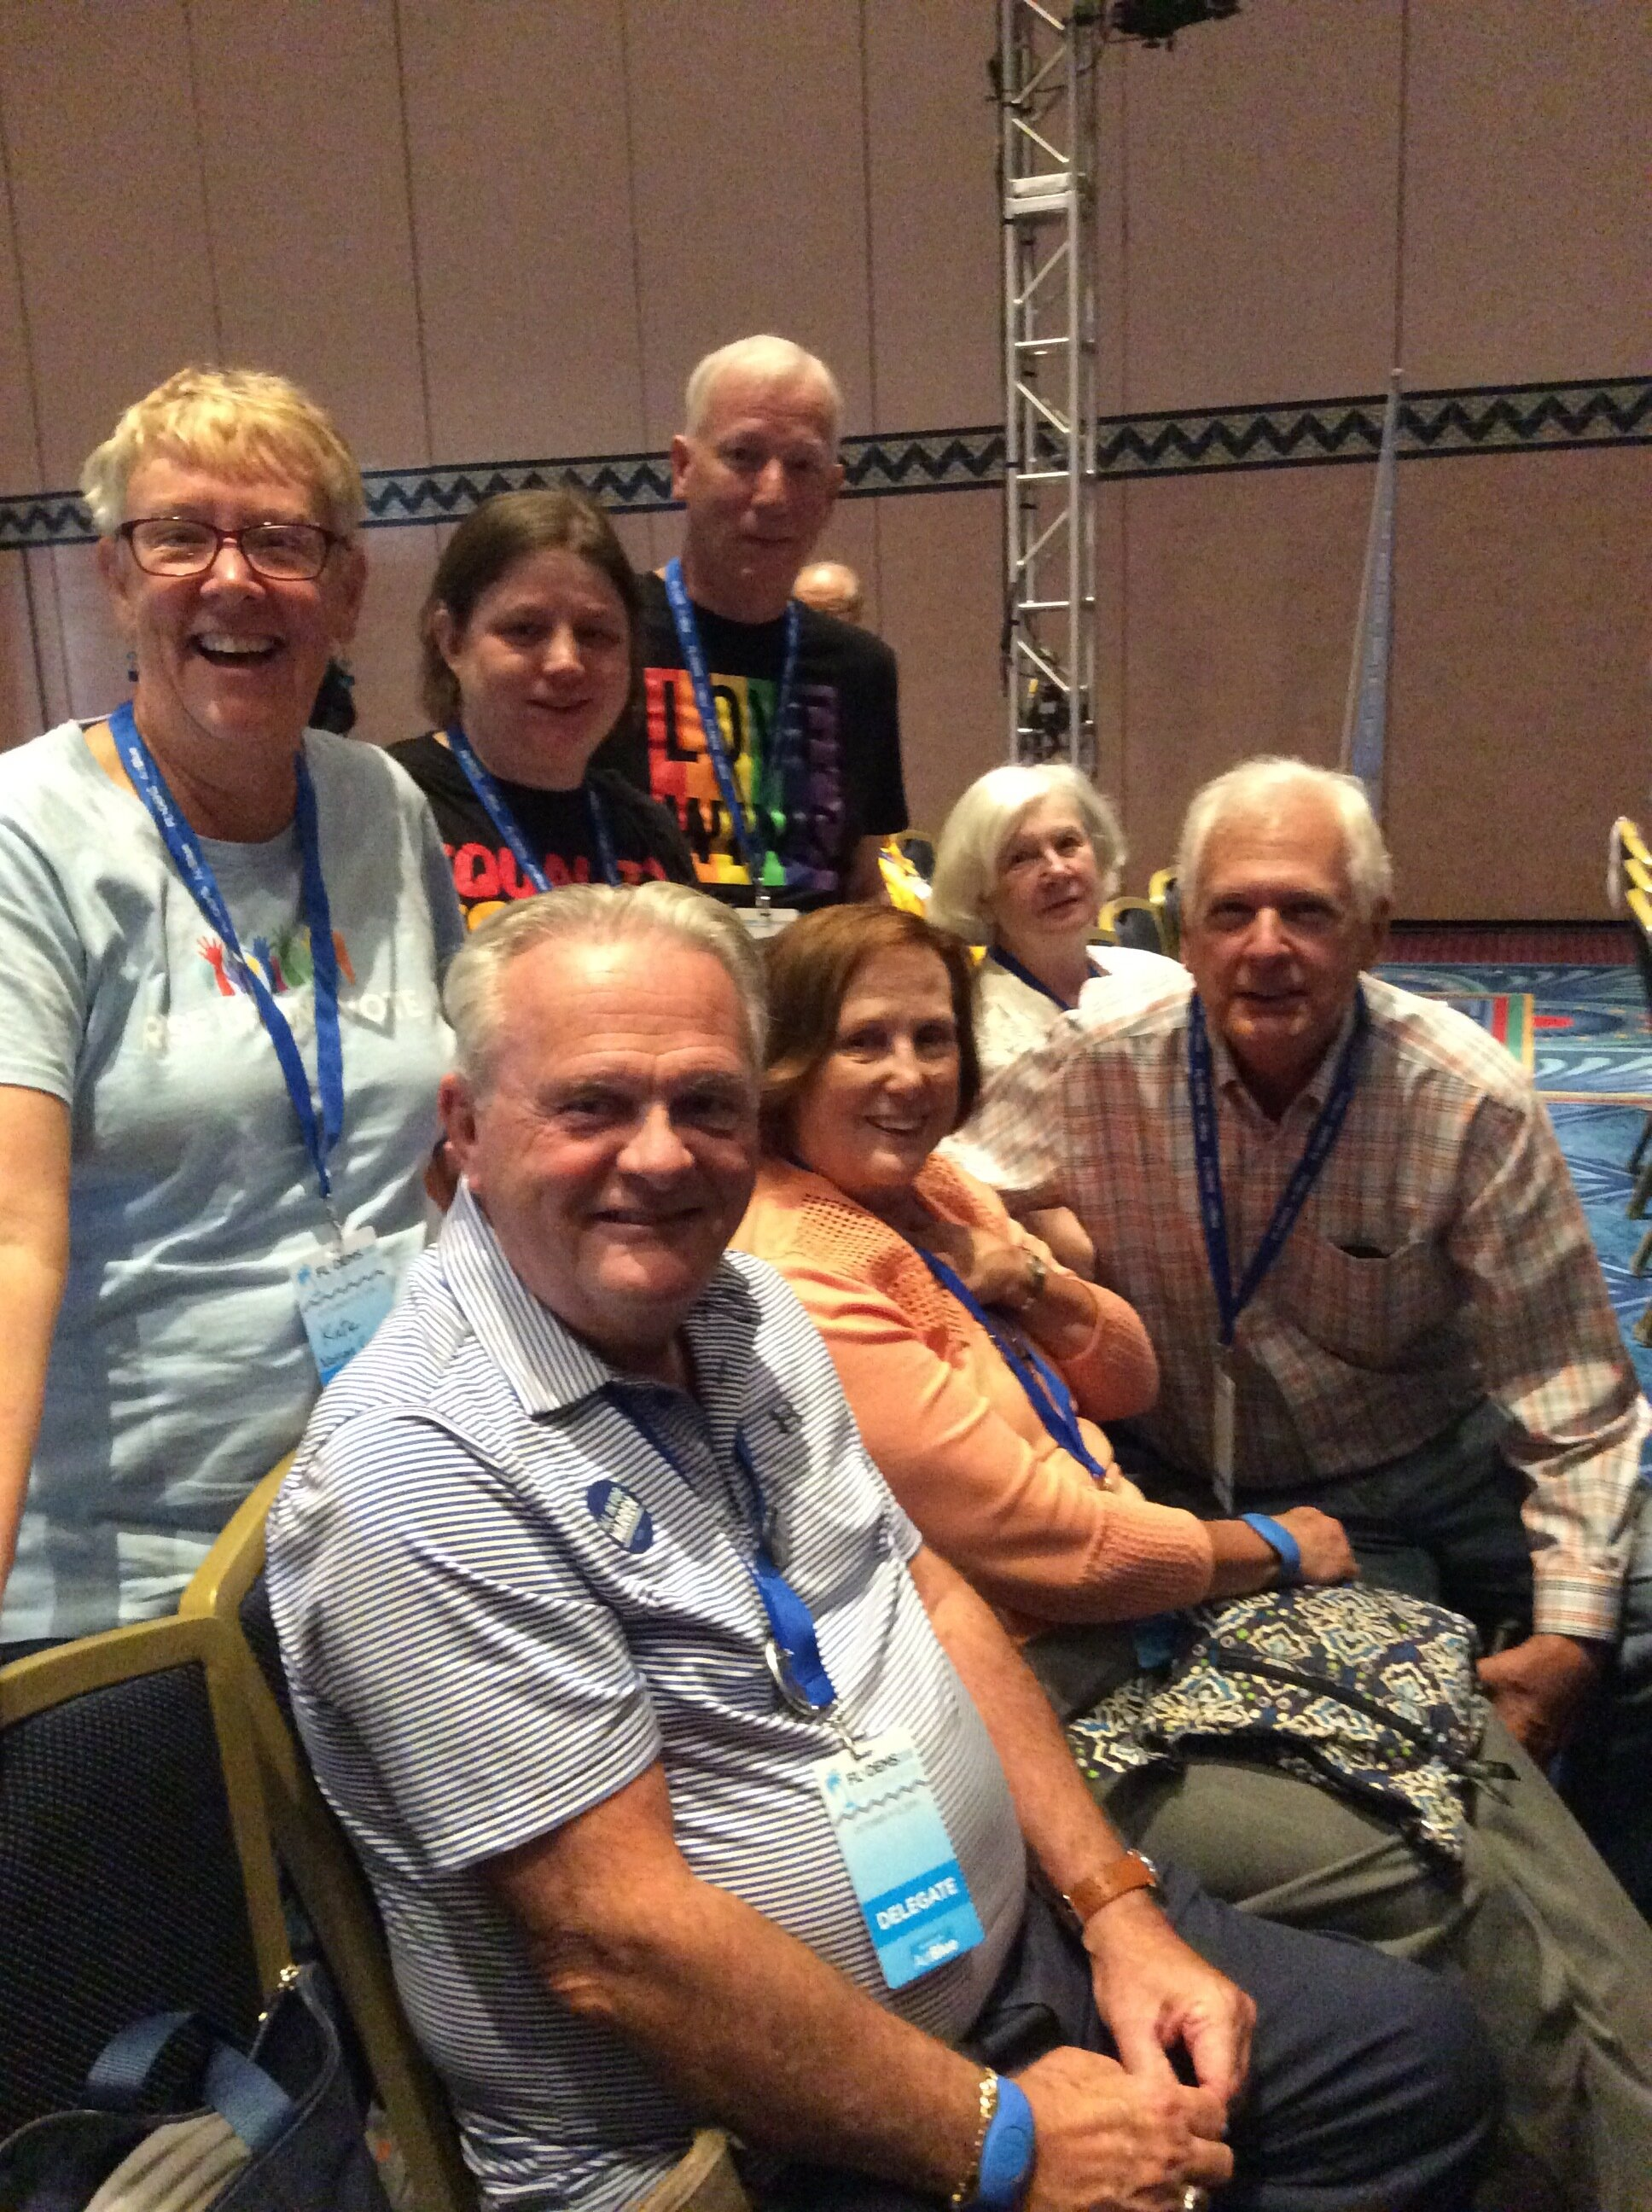 Delegates to the 2019 Florida State Democratic Convention included residents from Bryceville, Yulee, and Fernandina Beach. Delegates heard from national leaders, met in working caucus groups, and voted on resolutions for the upcoming party platform. our nassau county delegates:  Back row:  kate Hart, Jessica Morton, Phil morton.  Front row: Don west, shirley phillips, wayne schultz, carla voisard.  not shown  amelia hart.